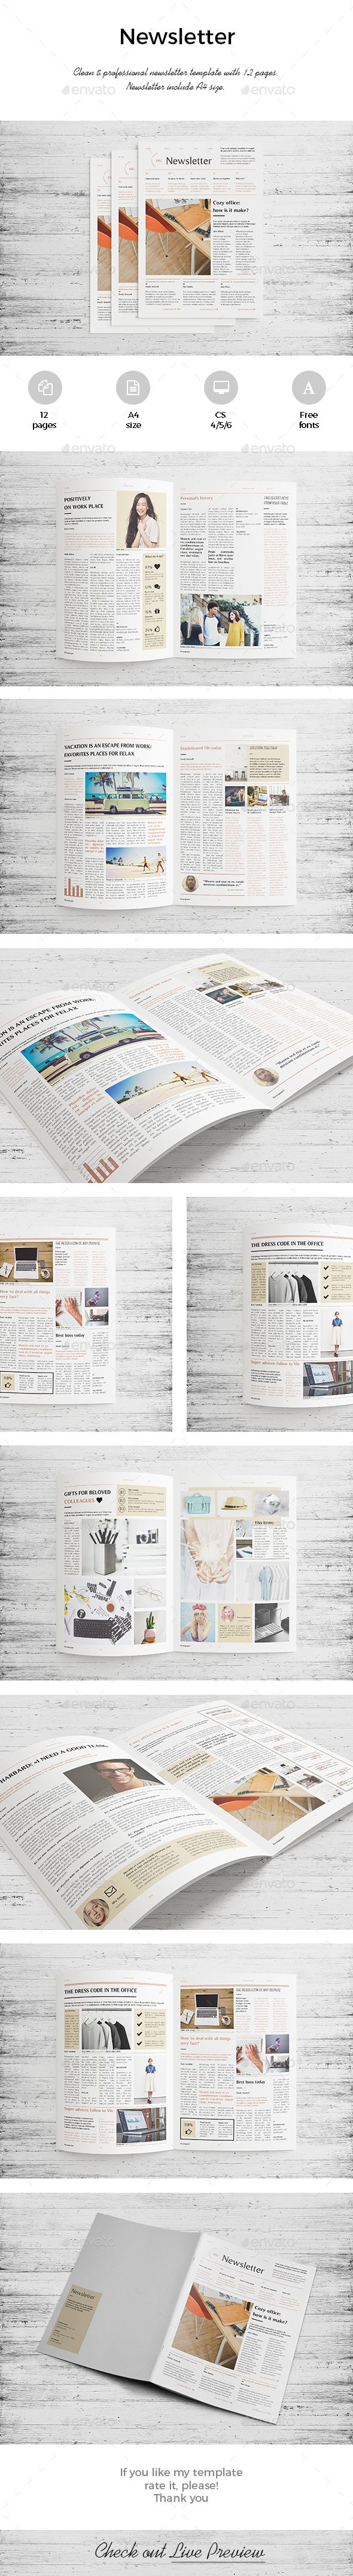 Newsletter Corporate Pages Pinterest Template Print - Pages newsletter templates